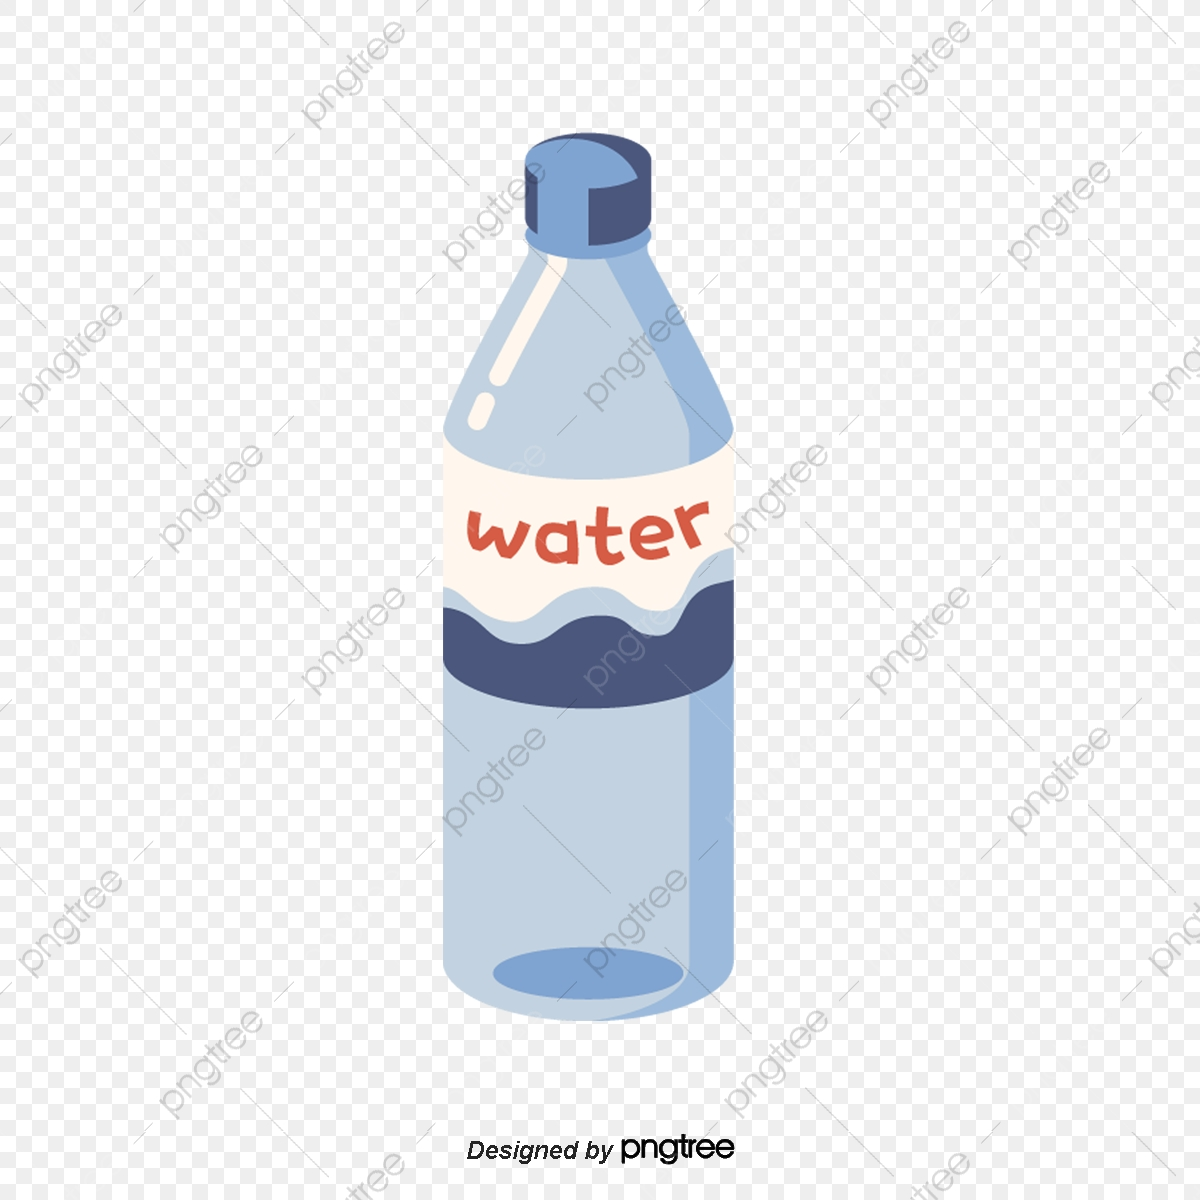 Mineral Water Bottles, Water Clipart, Mineral Water PNG Transparent.